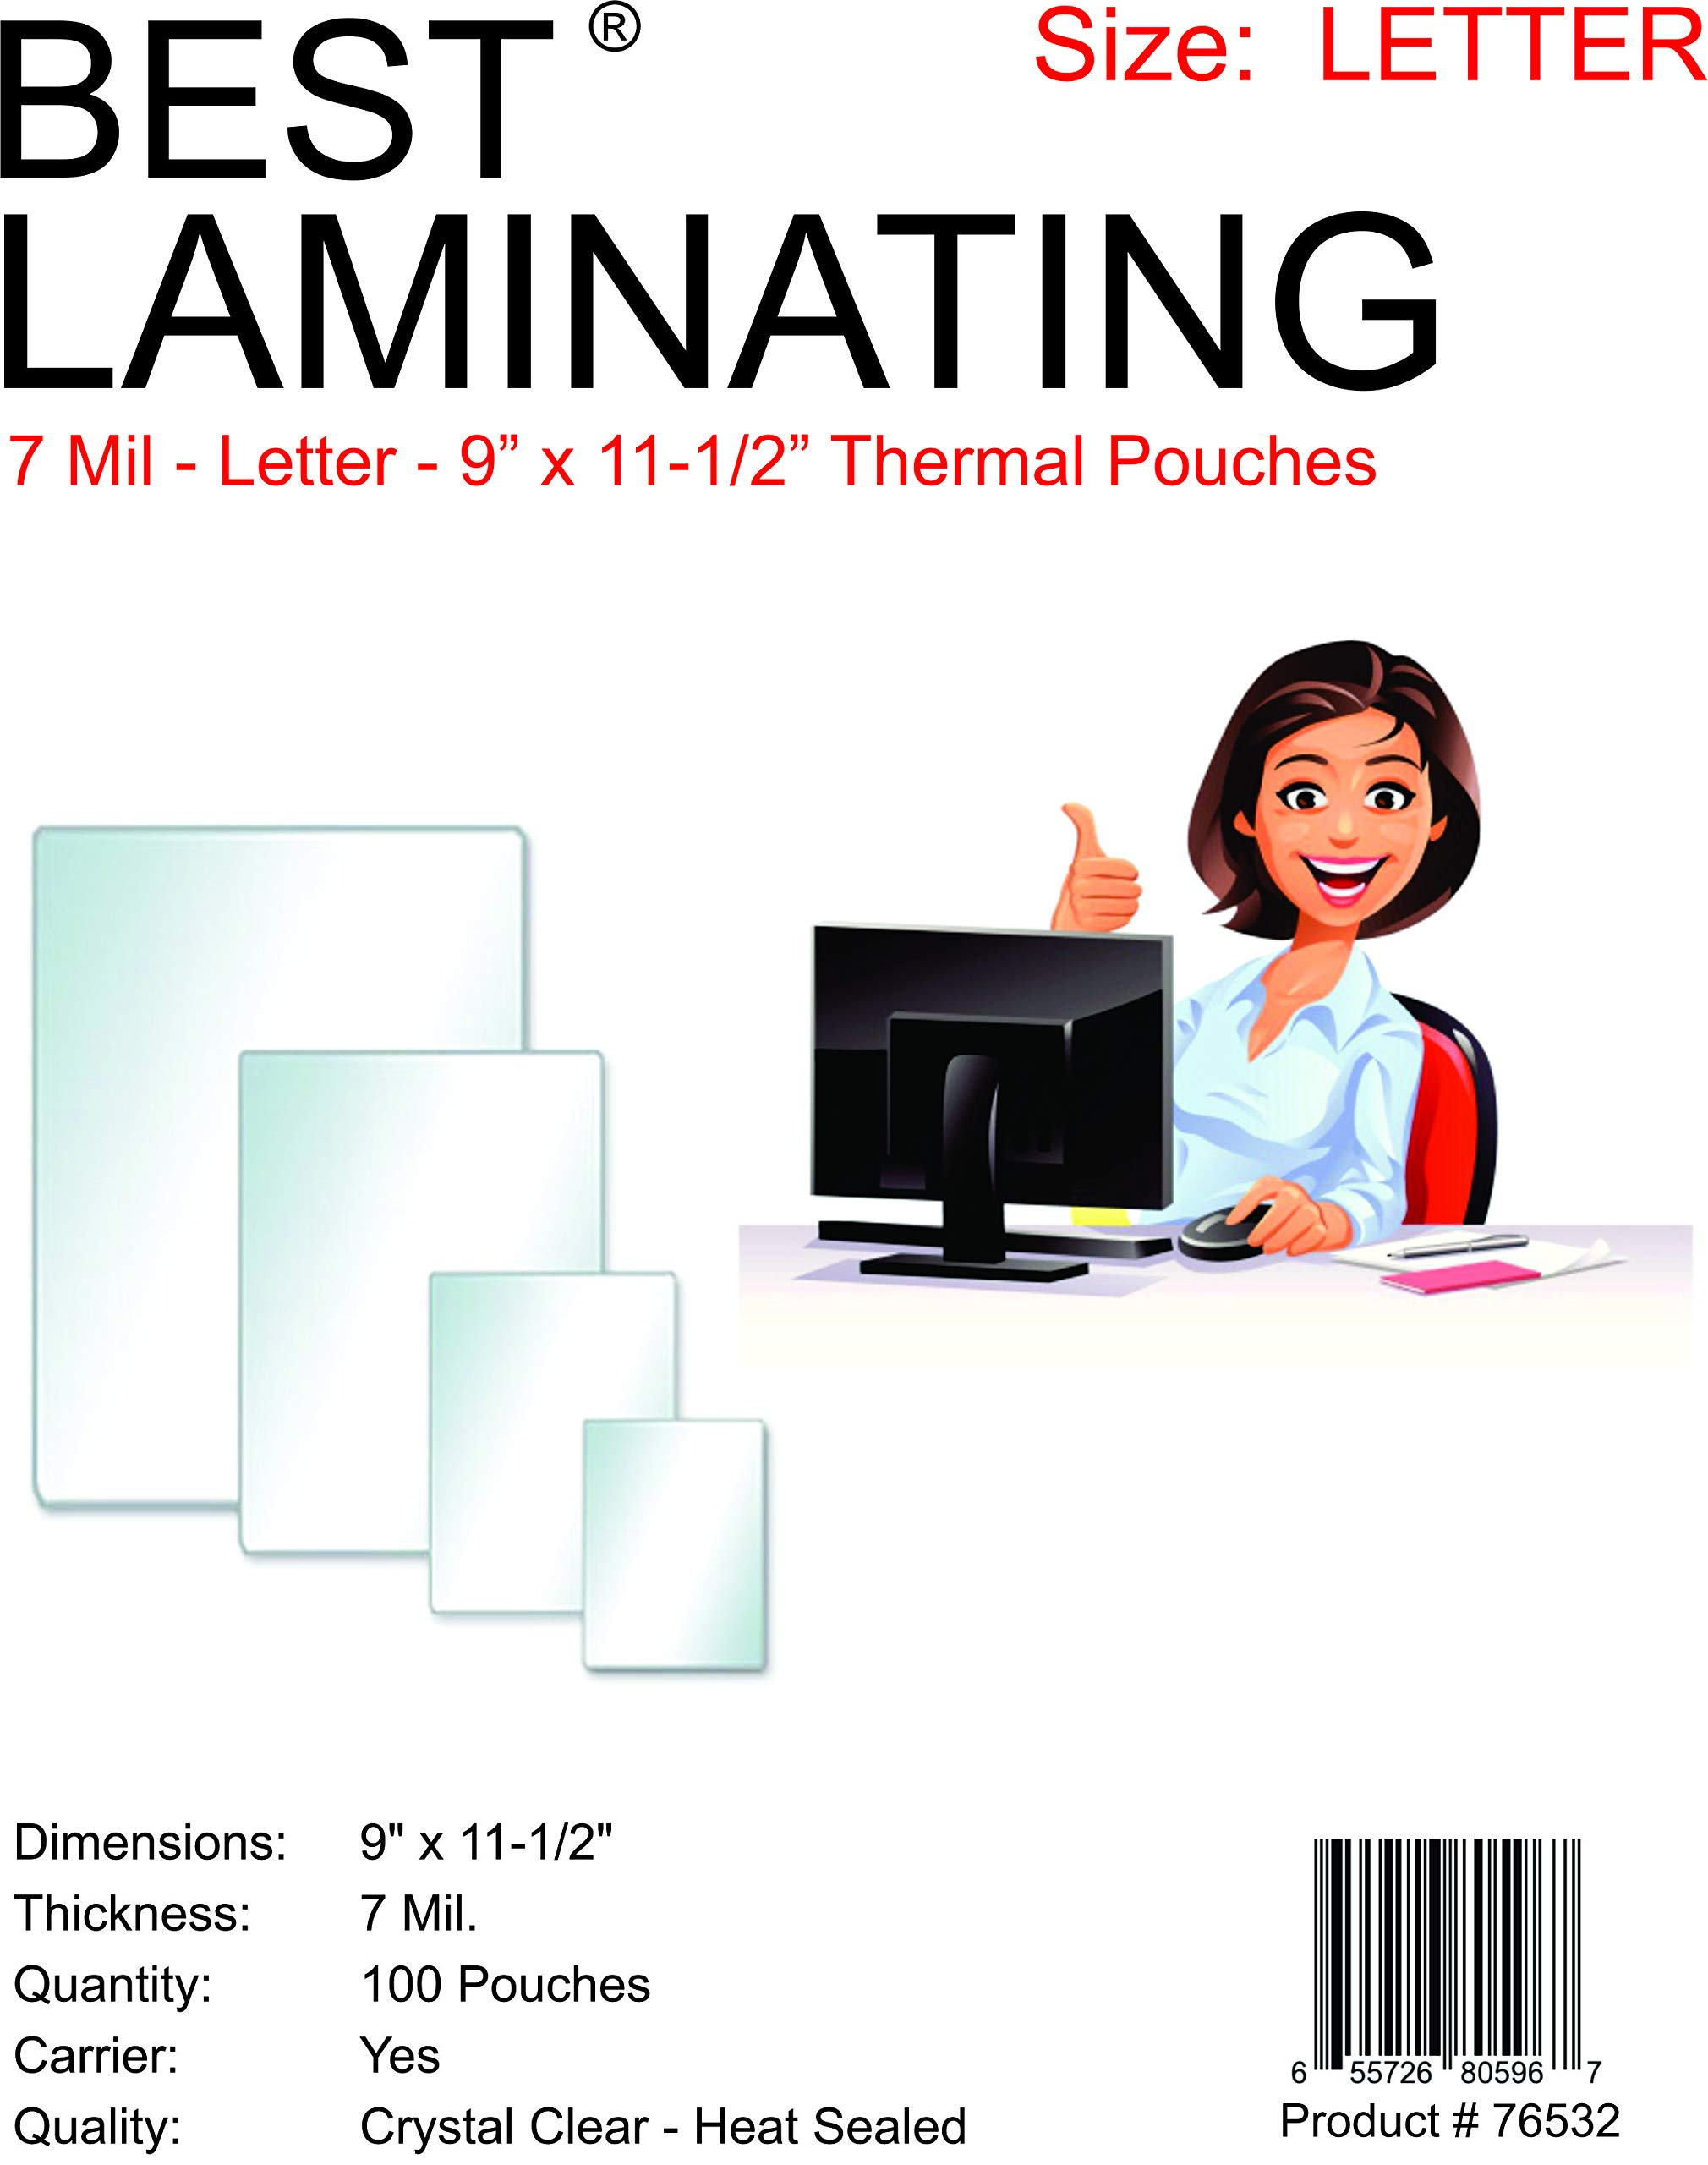 Best Laminating 7 Mil Clear Letter Size Thermal Laminating Pouches - 9'' X 11.5'' - 100 Pouches